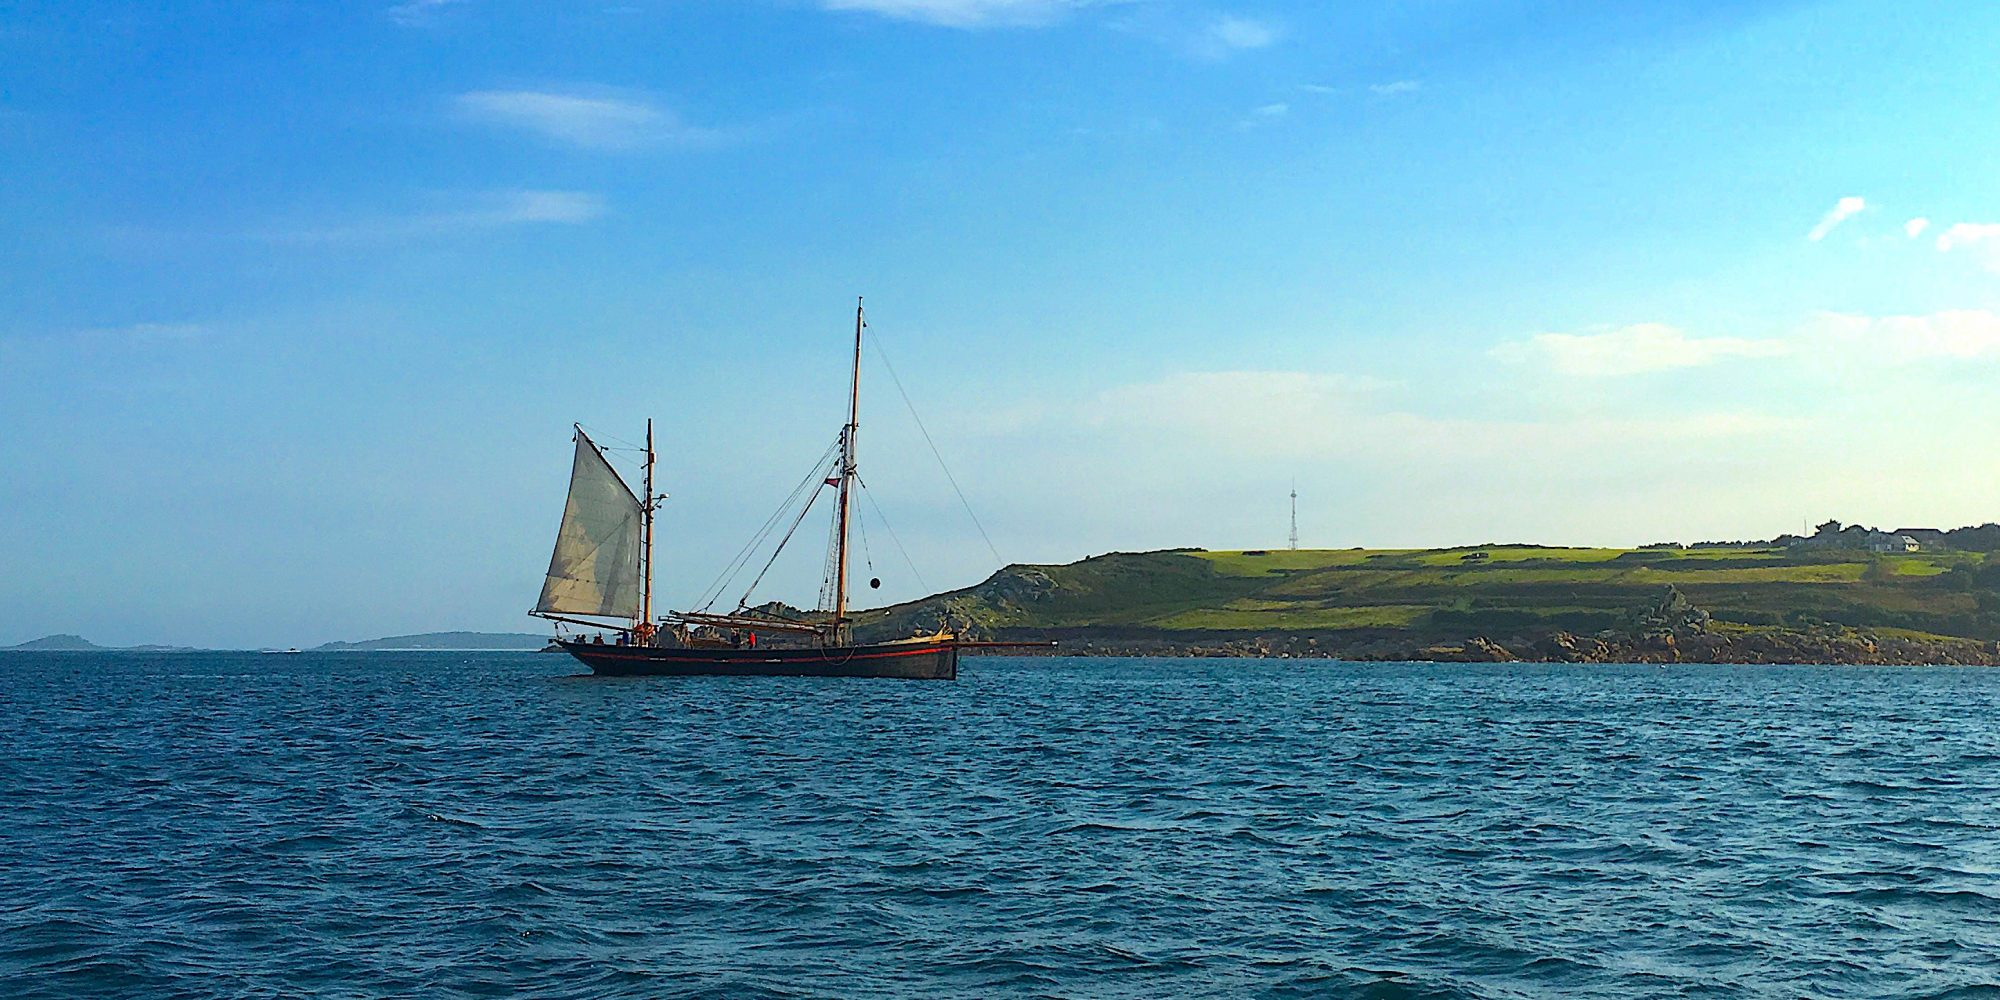 Old style, masted wooden sail boat on sea, with green landscape behind. A destination management plan for the Isles of Scilly